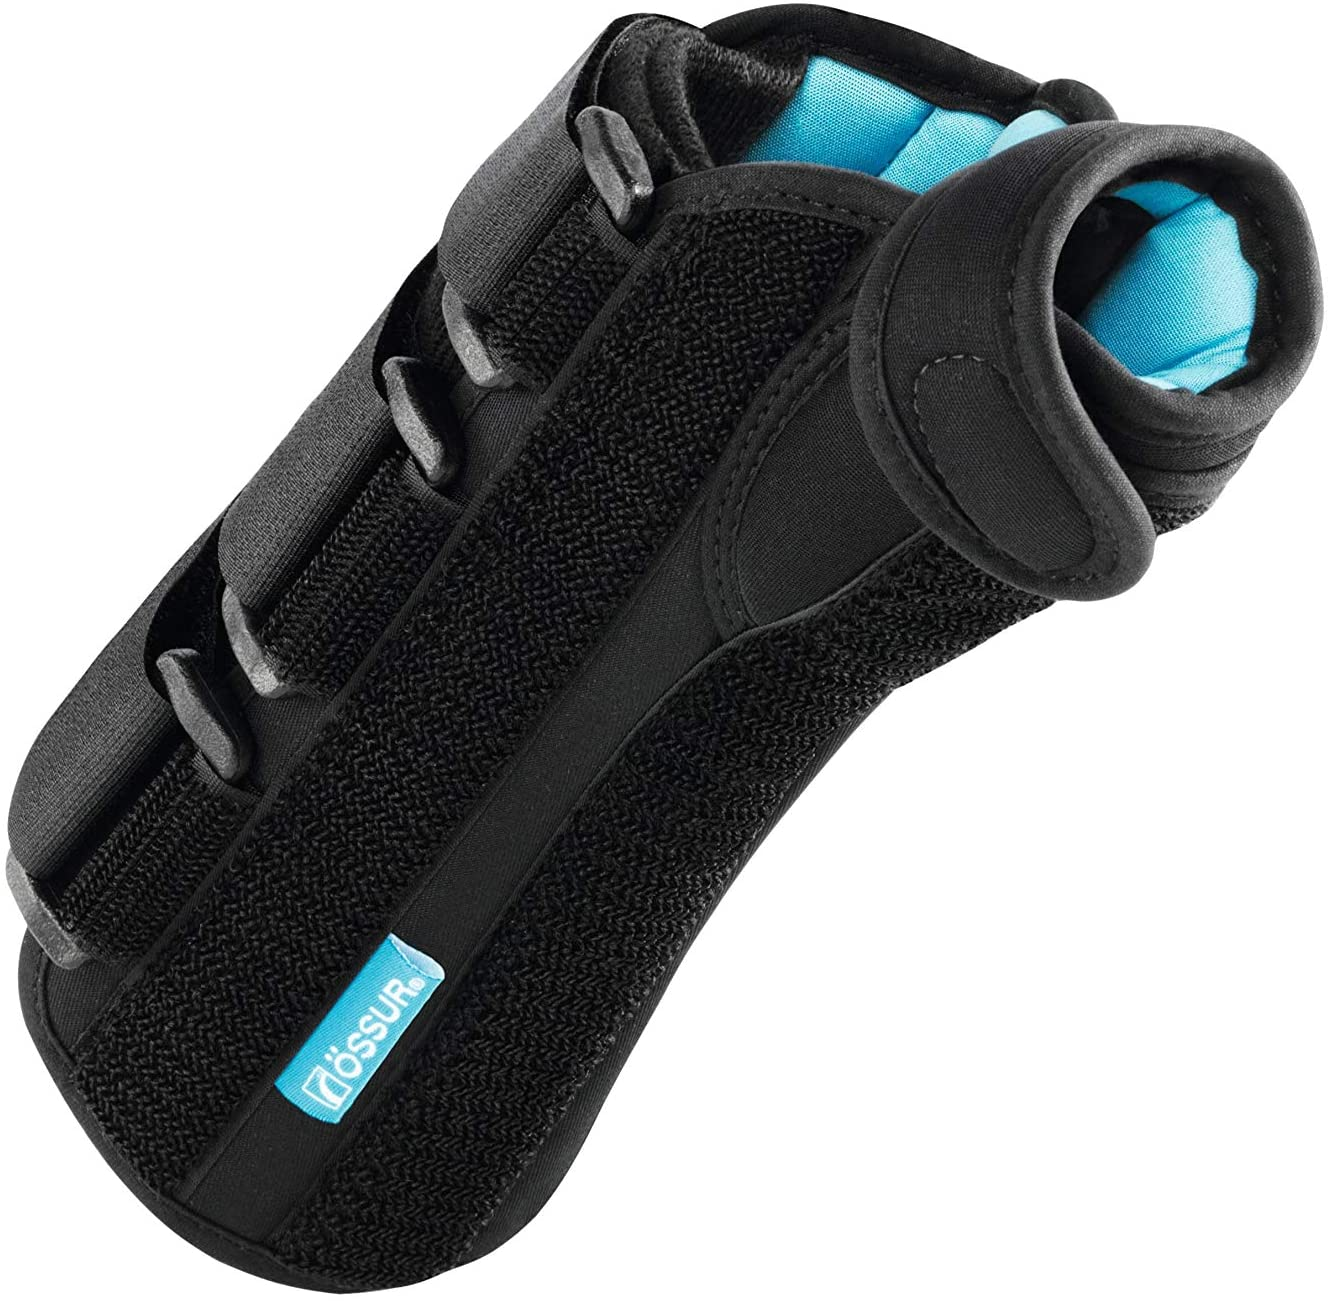 Ossur Formfit Thumb Spica Arthritis Gamekeeper's Thumb Tendonitis Support - Contoured Breathable Material (Right, Small)